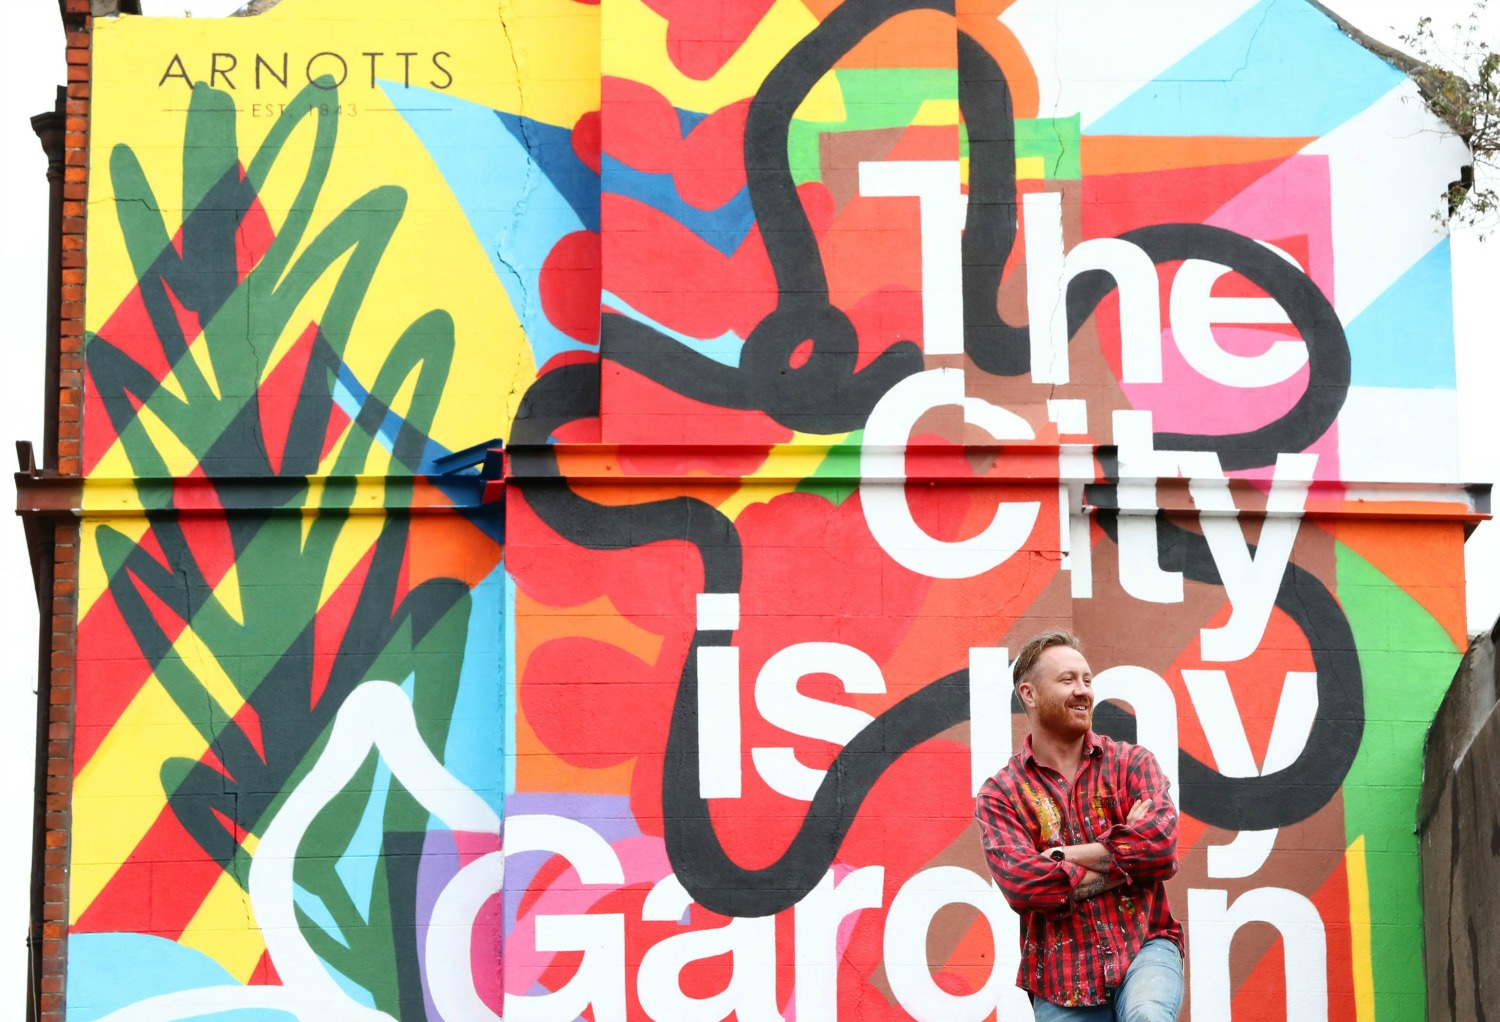 Arnotts launch 'The City is my Garden'